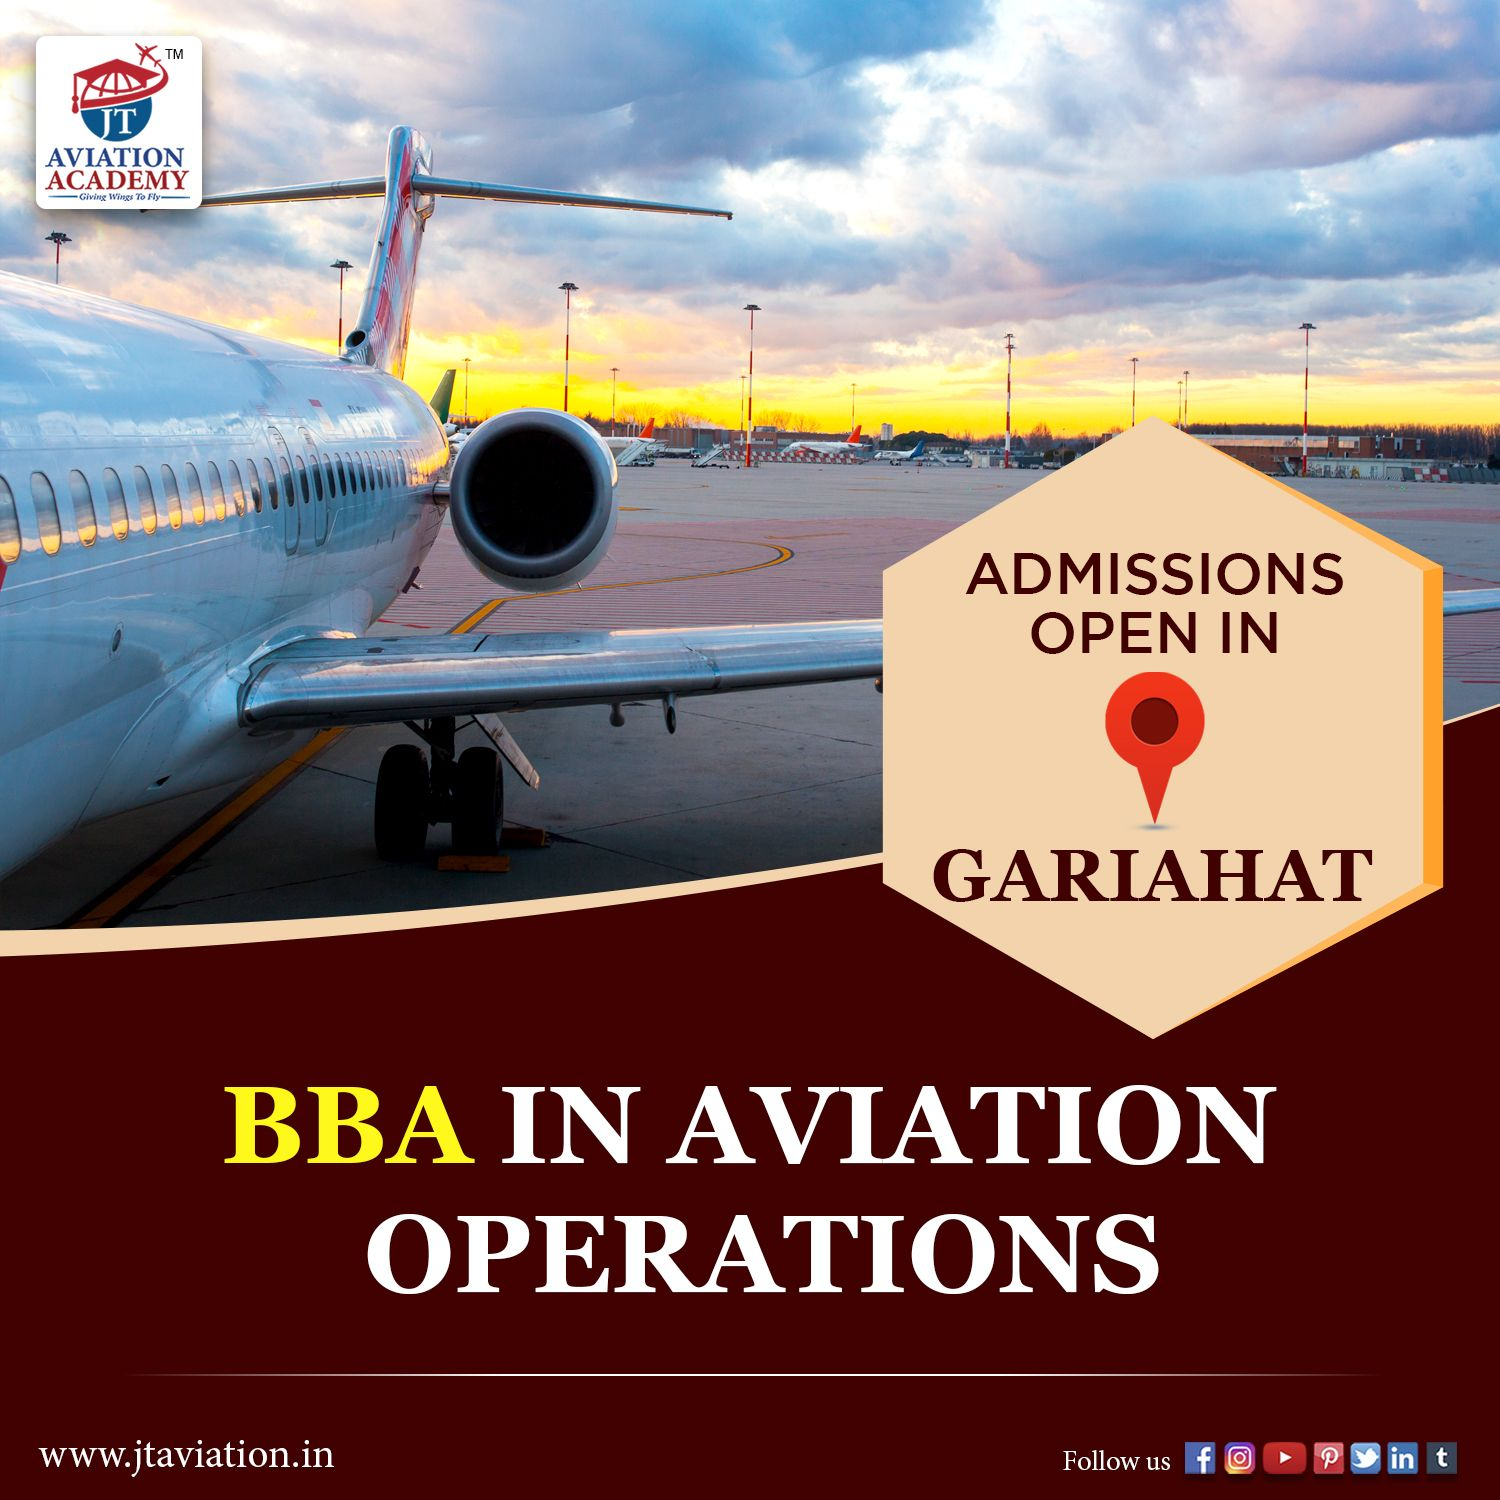 Bba In Aviation Operation Is The Best Professional Course That Will Allow You To Learn About The Aviat Aviation Careers Operations Management Aviation Industry